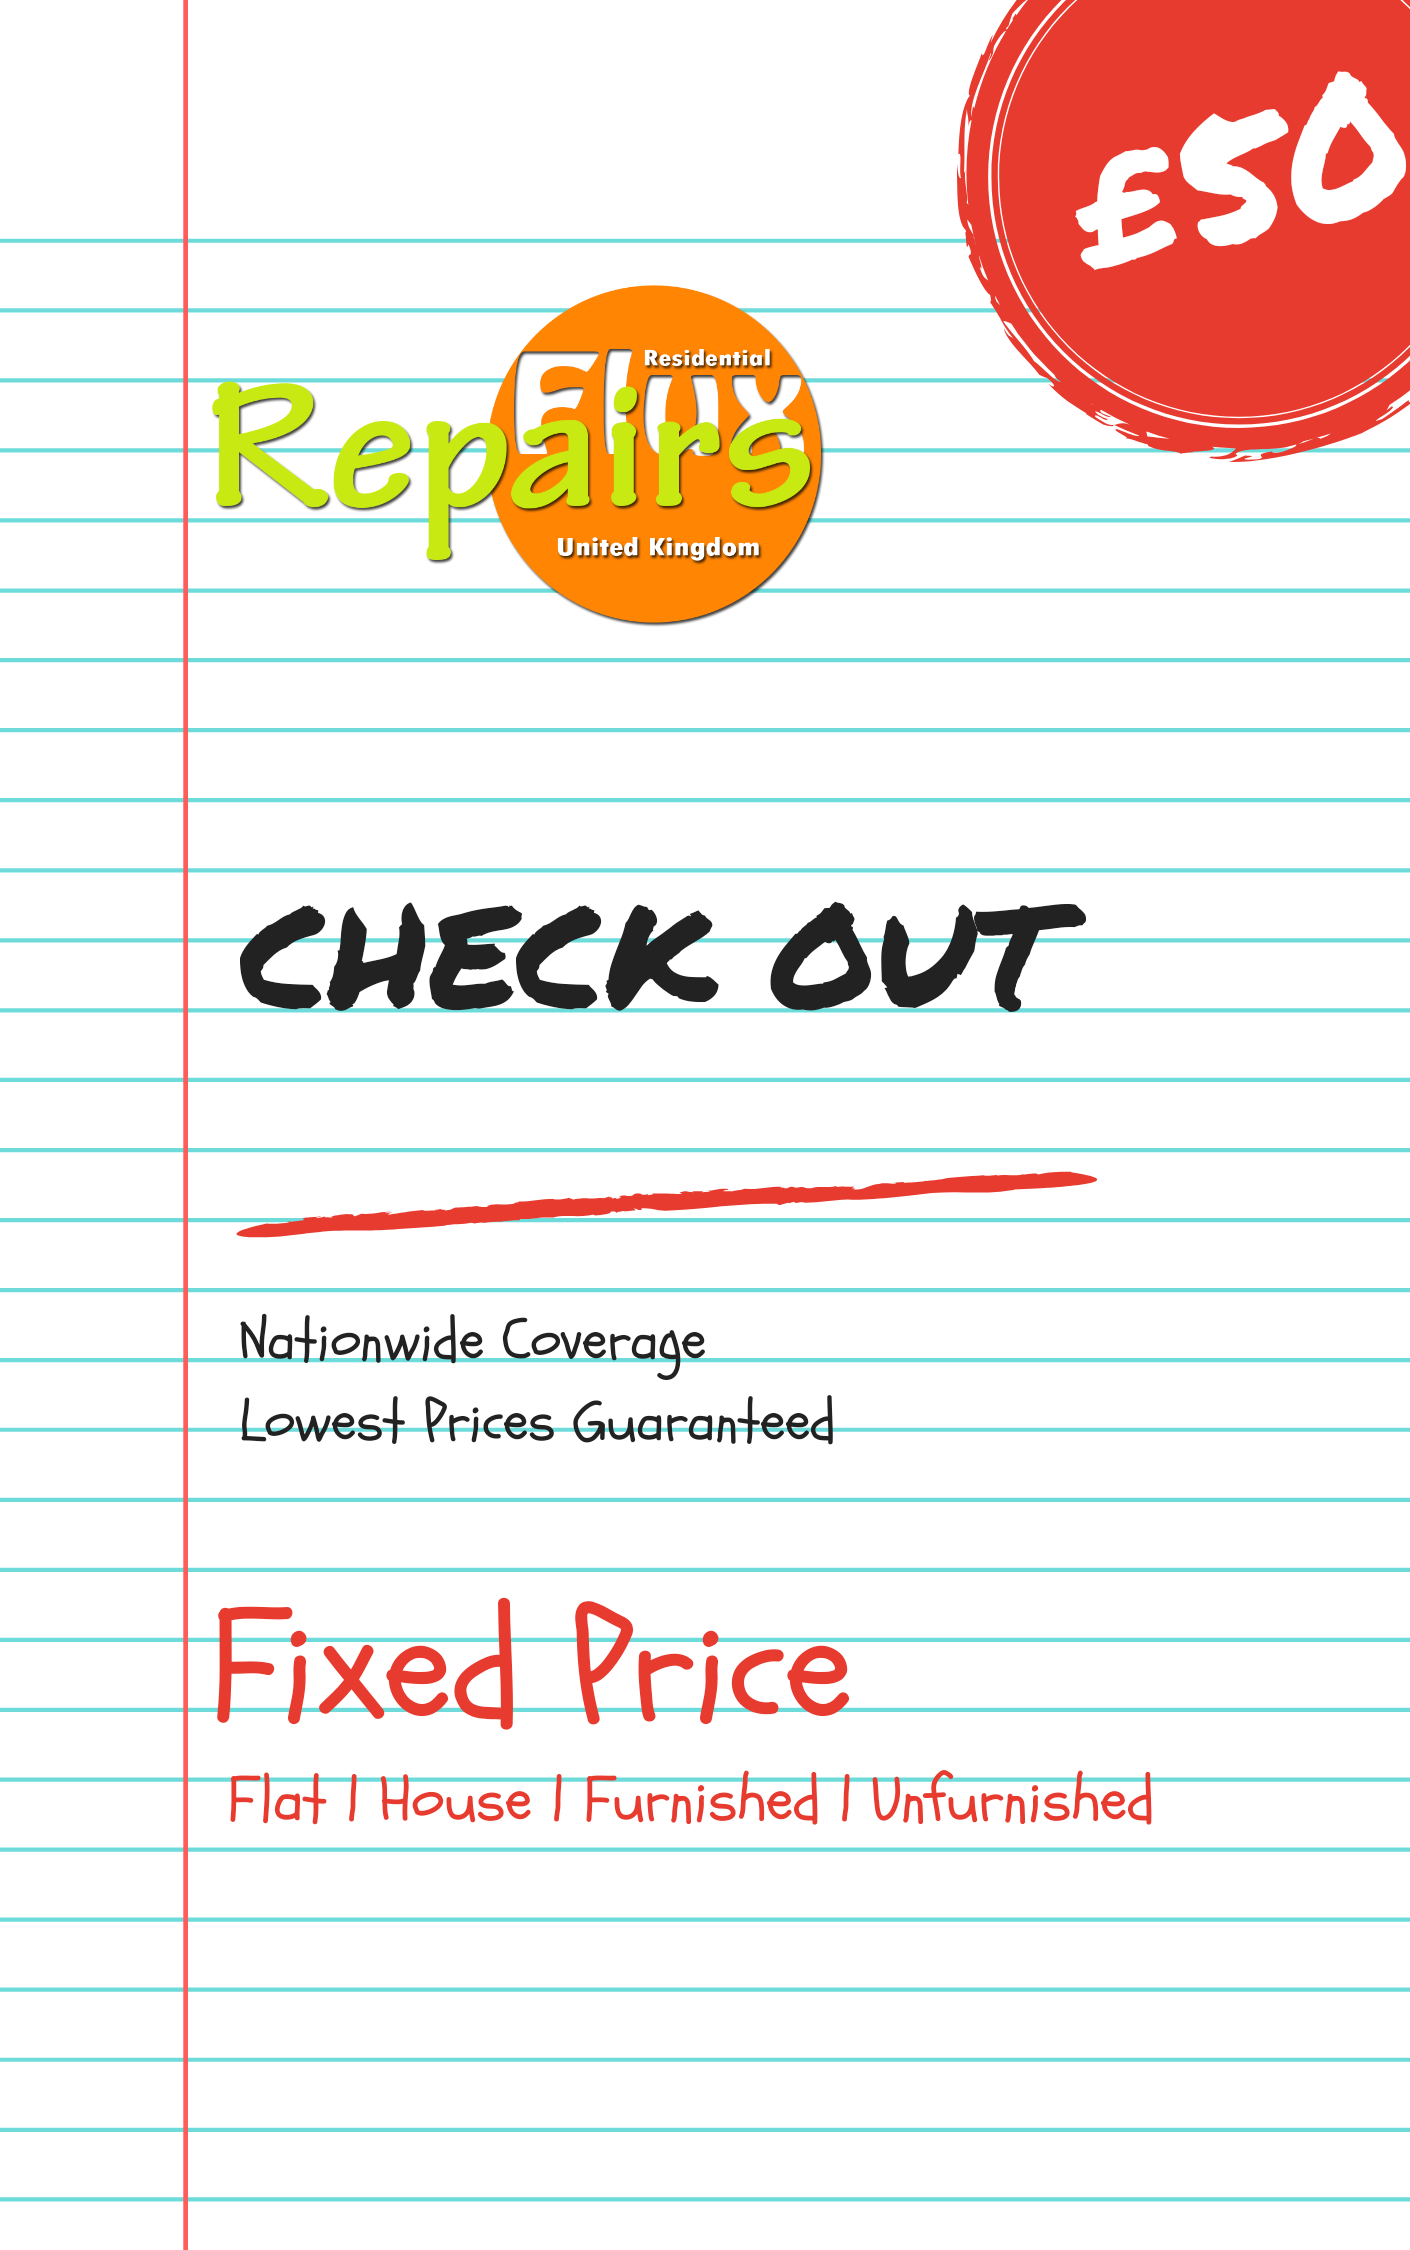 RepairsFluX Check Out